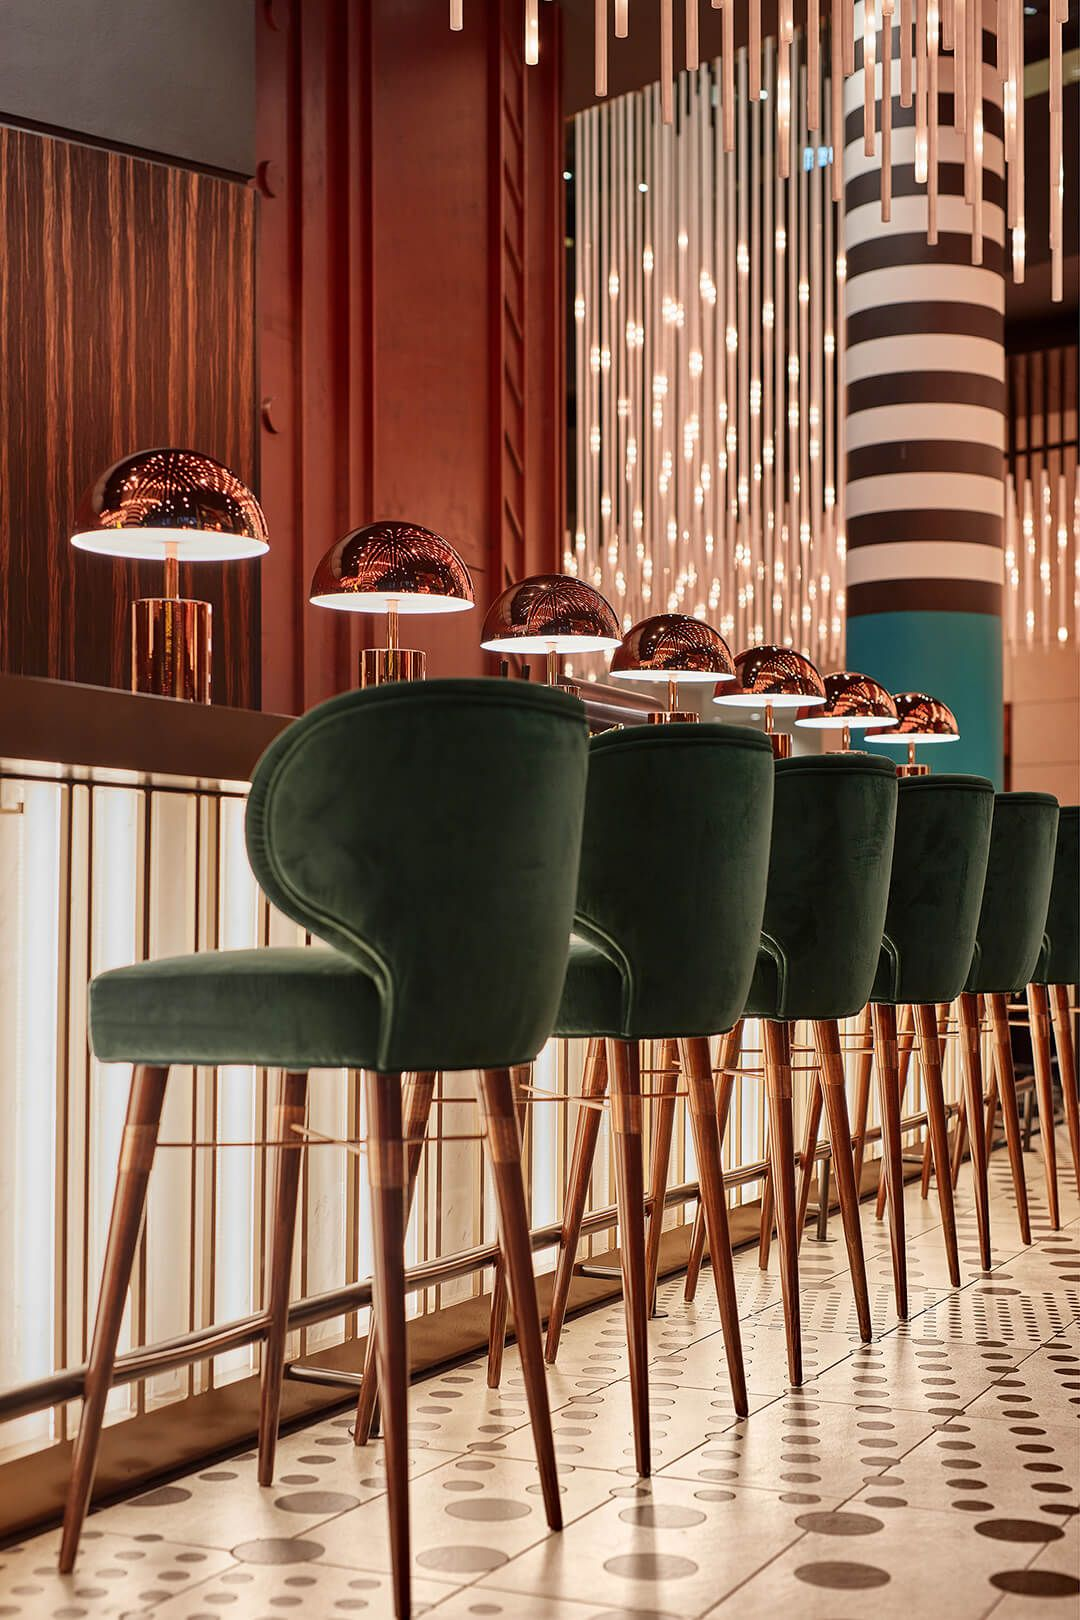 Sundukovy Sisters Brings All The Animals Out To Play Id Bar Lounge Restaurant Design Restaurant Interior Design Bar Interior Design